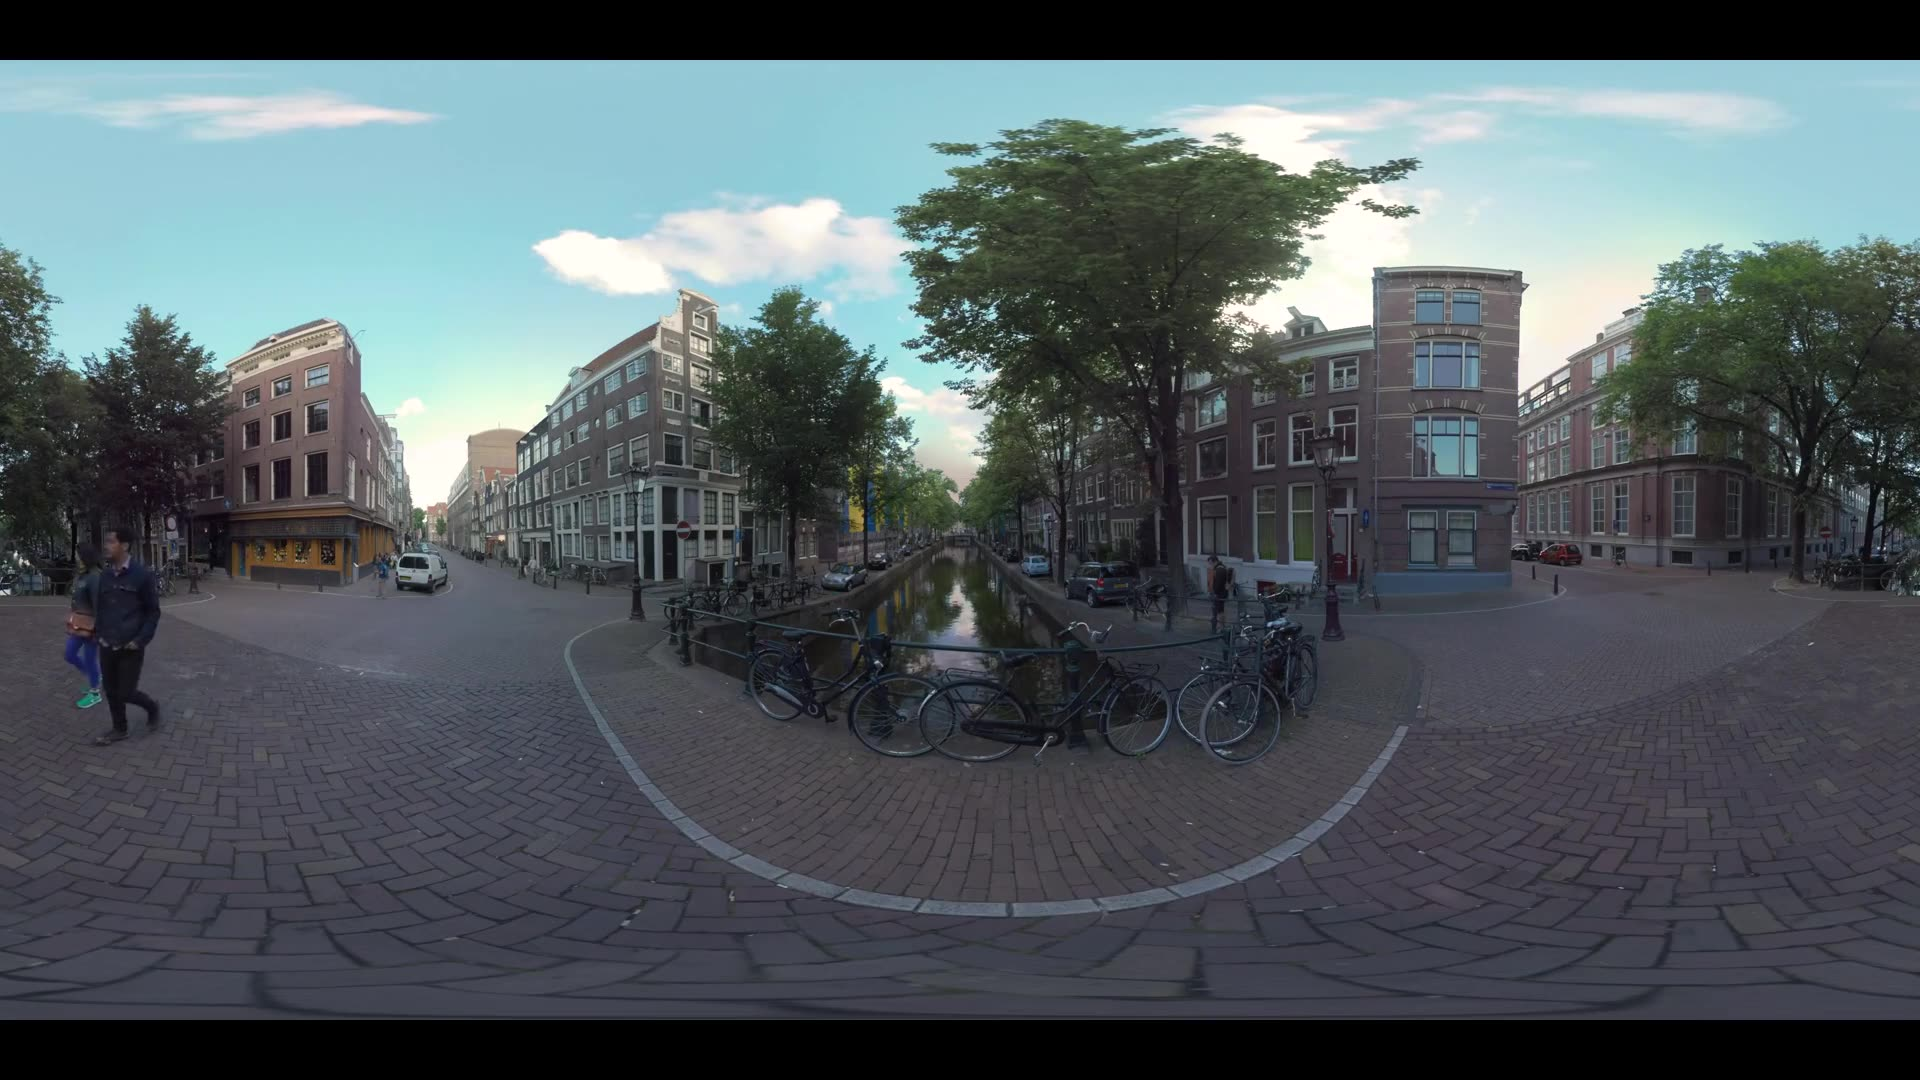 AMSTERDAM, NETHERLANDS - AUGUST 09, 2016: 360 VR video. Quiet city streets with houses alongside. View to the canal, parked bikes and people walking across the bridge